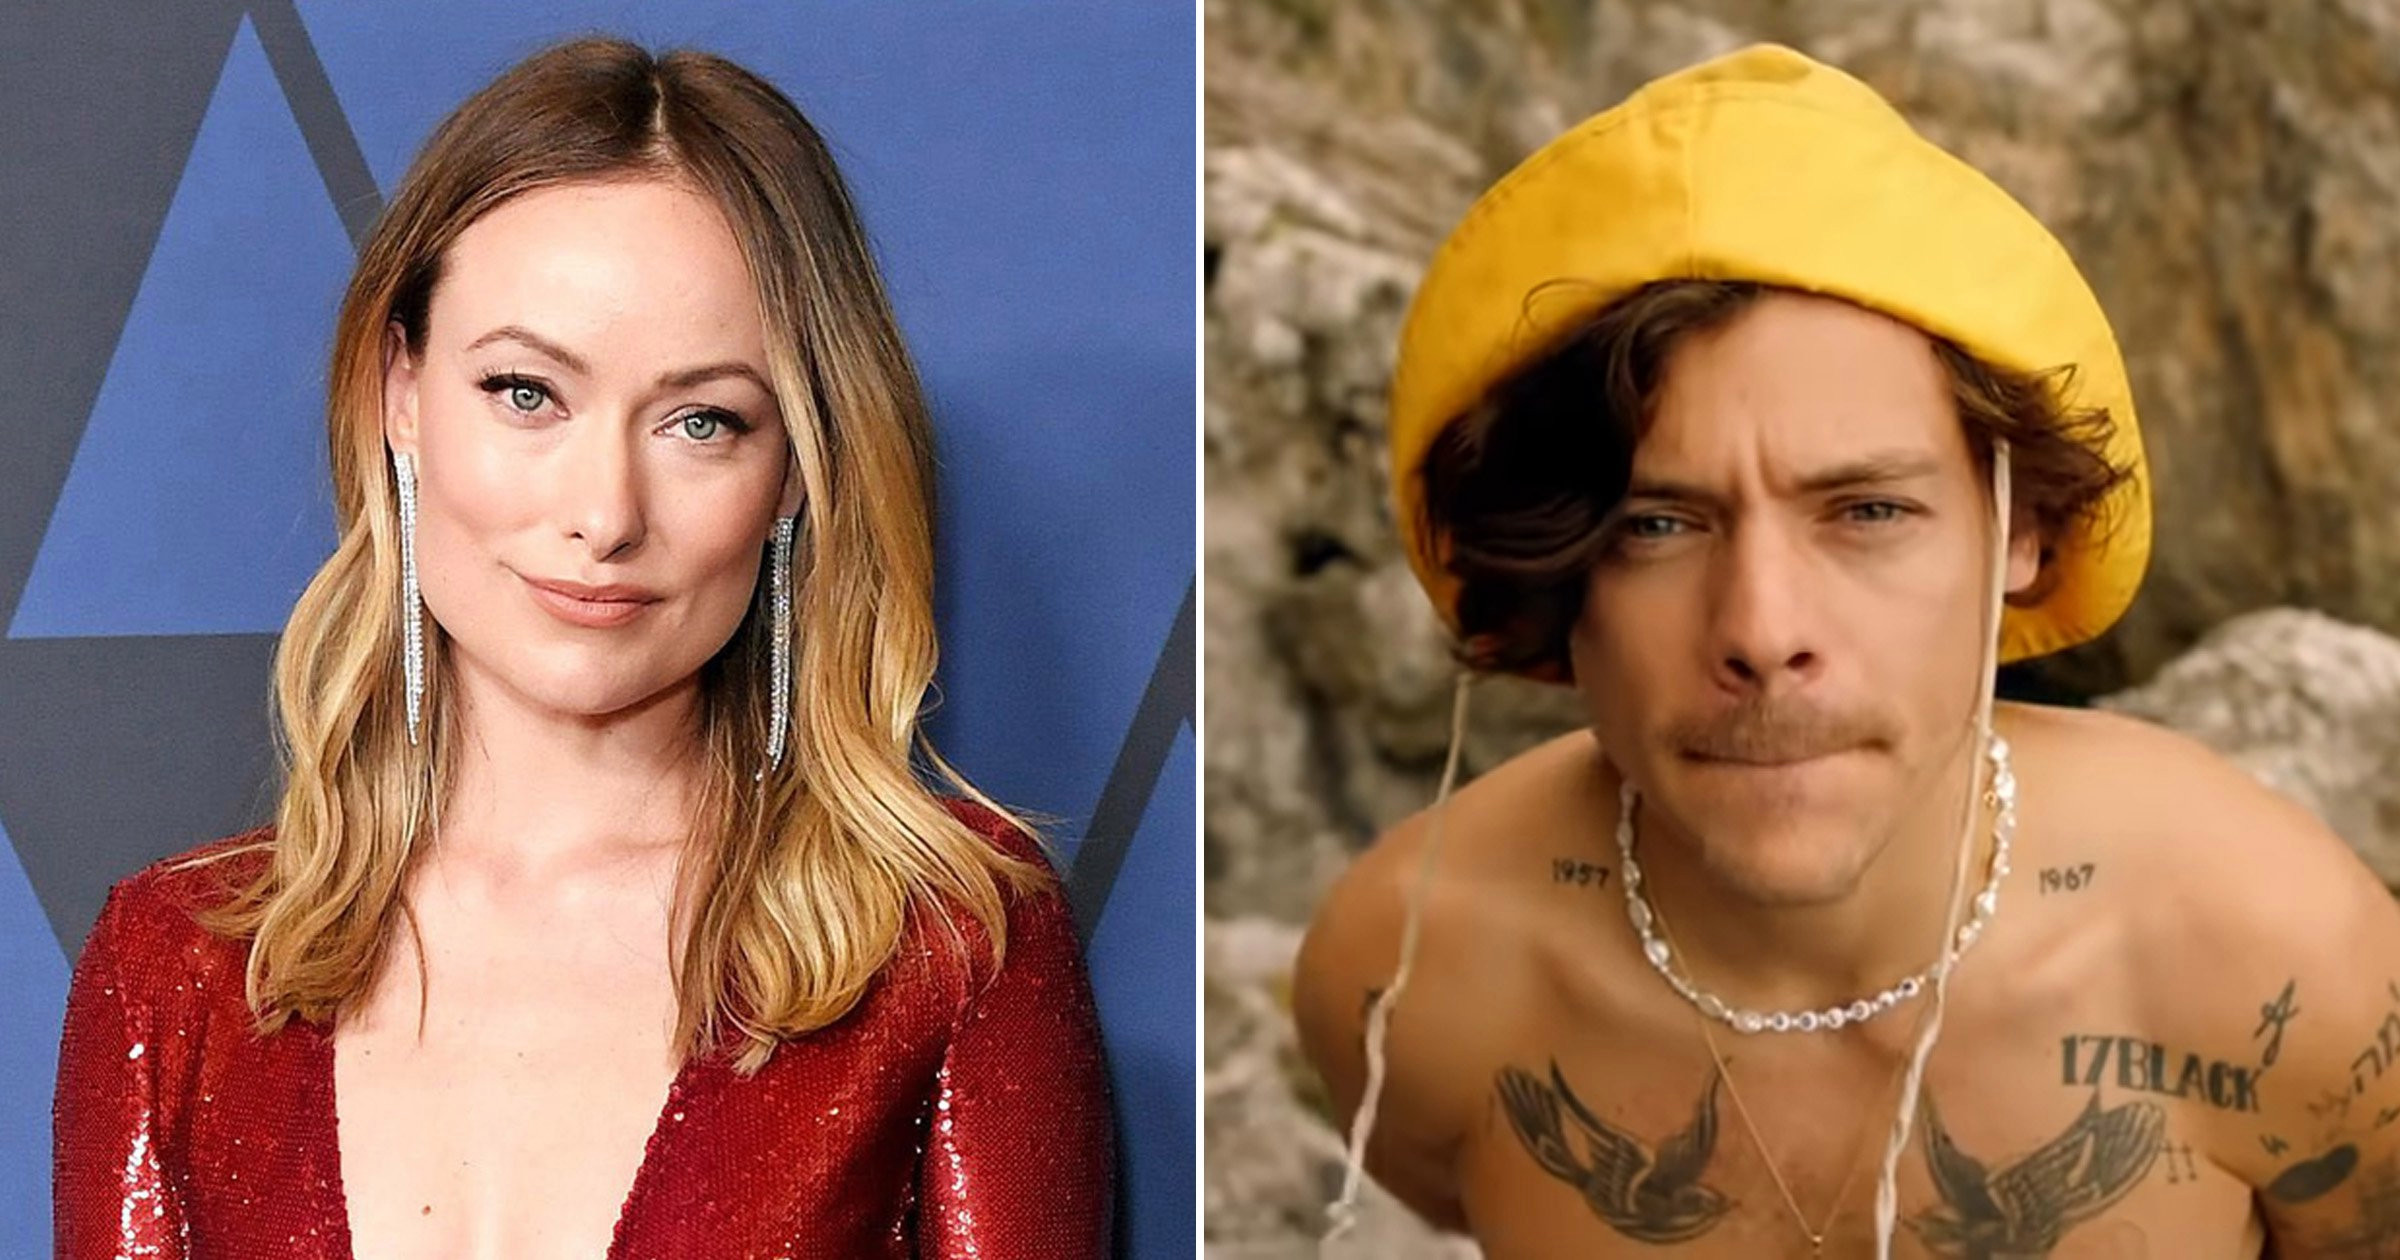 Olivia Wilde praises Harry Styles' 'humility and grace' as Don't Worry Darling wraps: 'Blew us away'